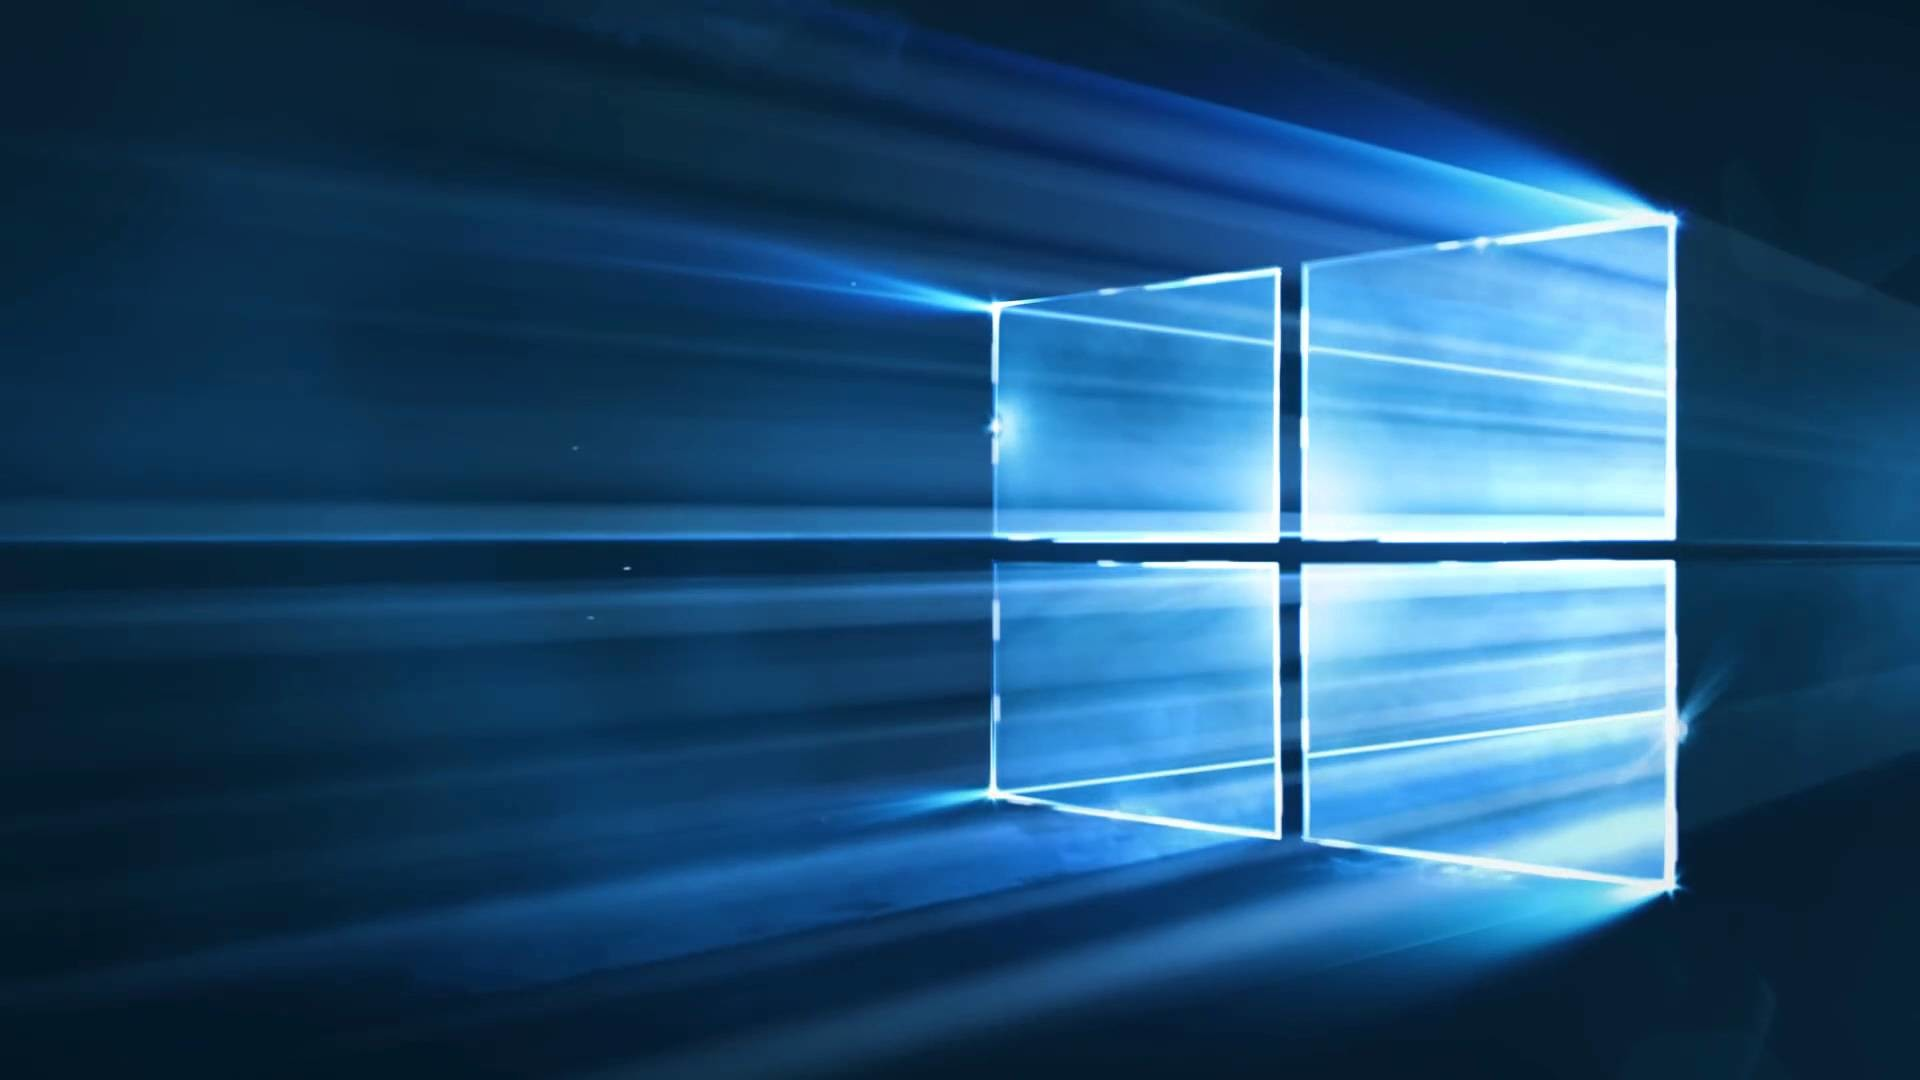 free dual screen wallpaper windows 7